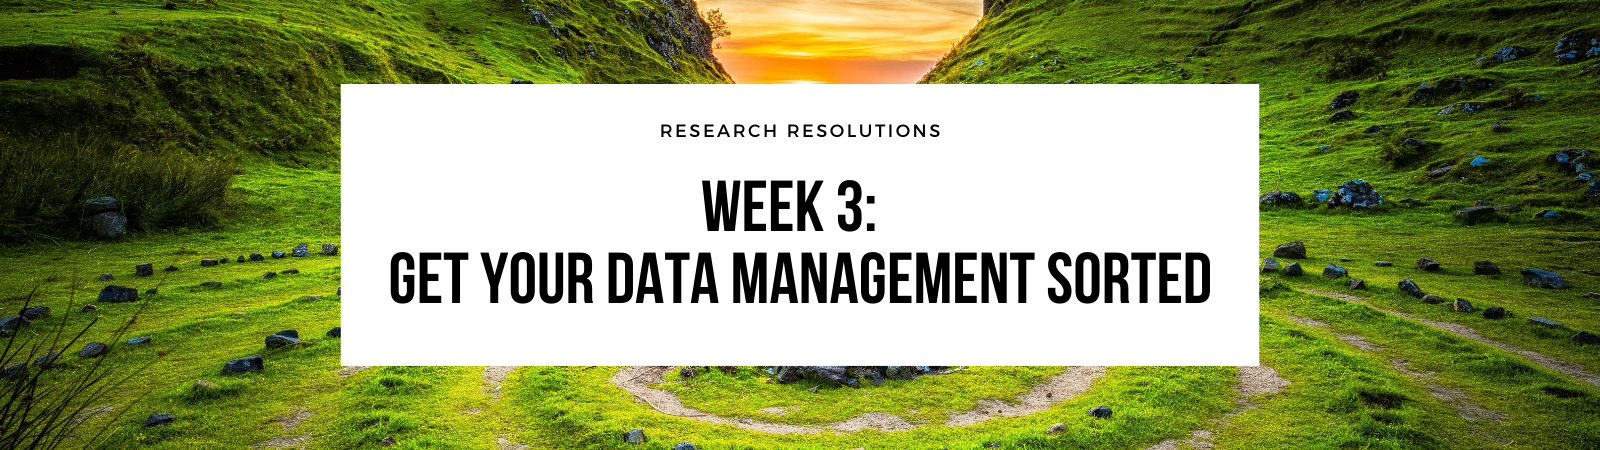 Week 3: Get your data management sorted